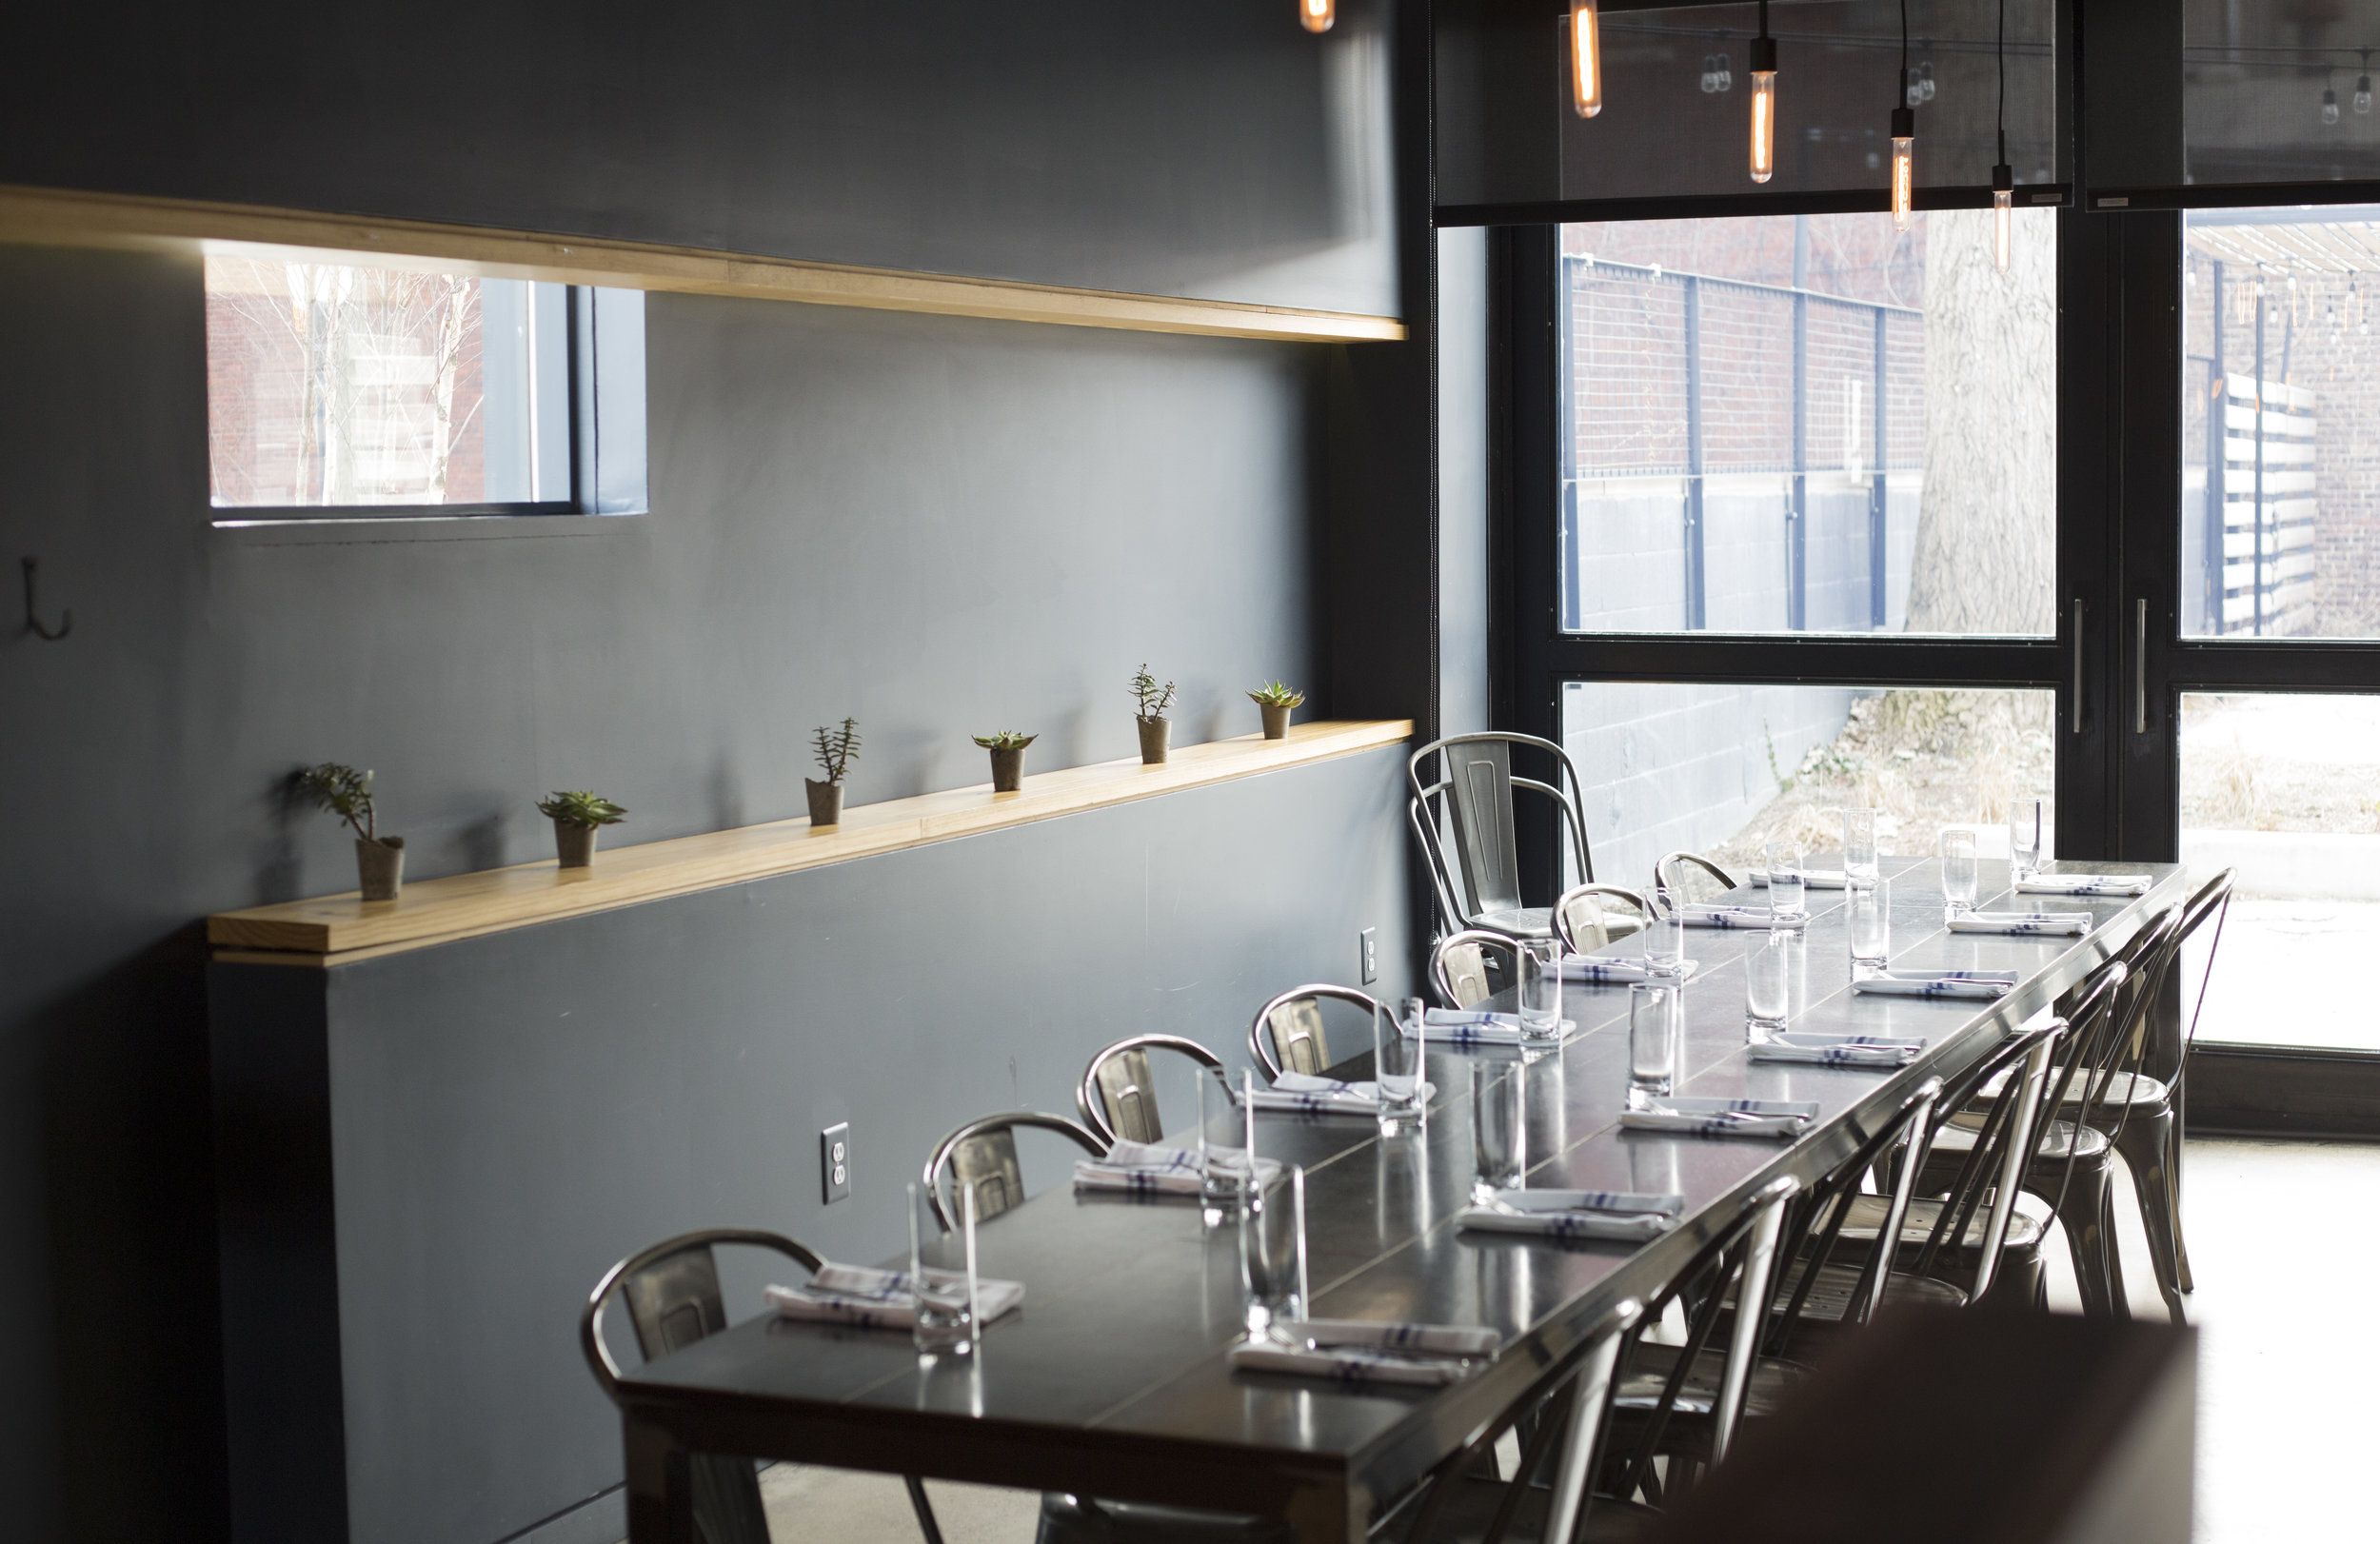 Selden Standard's long table invites more guests to sit, eat and communicate.